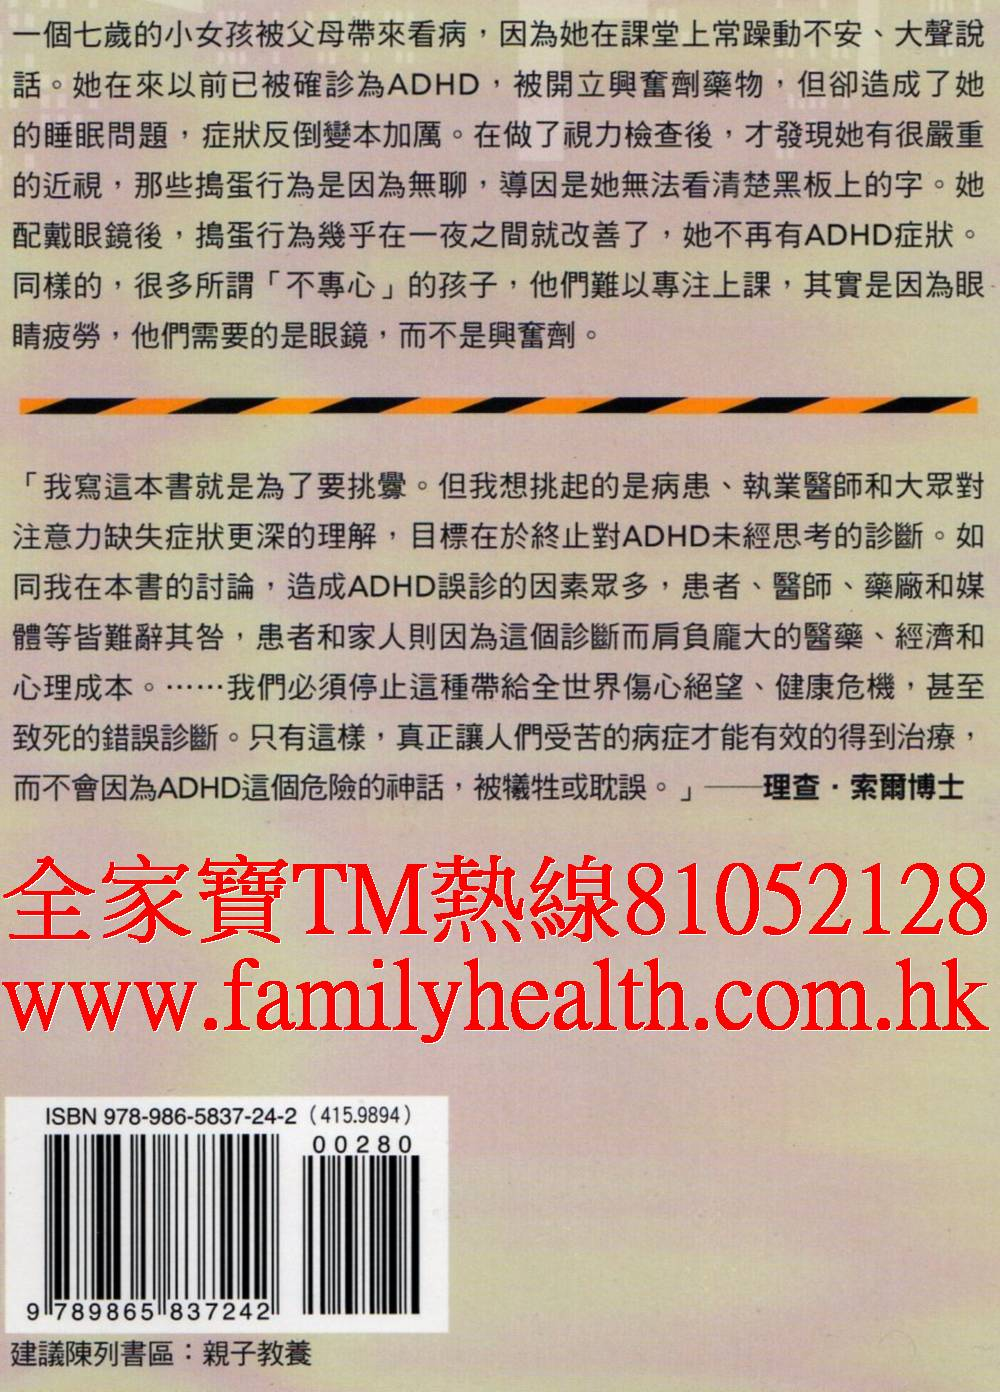 http://www.familyhealth.com.hk/files/full/896_1.jpg